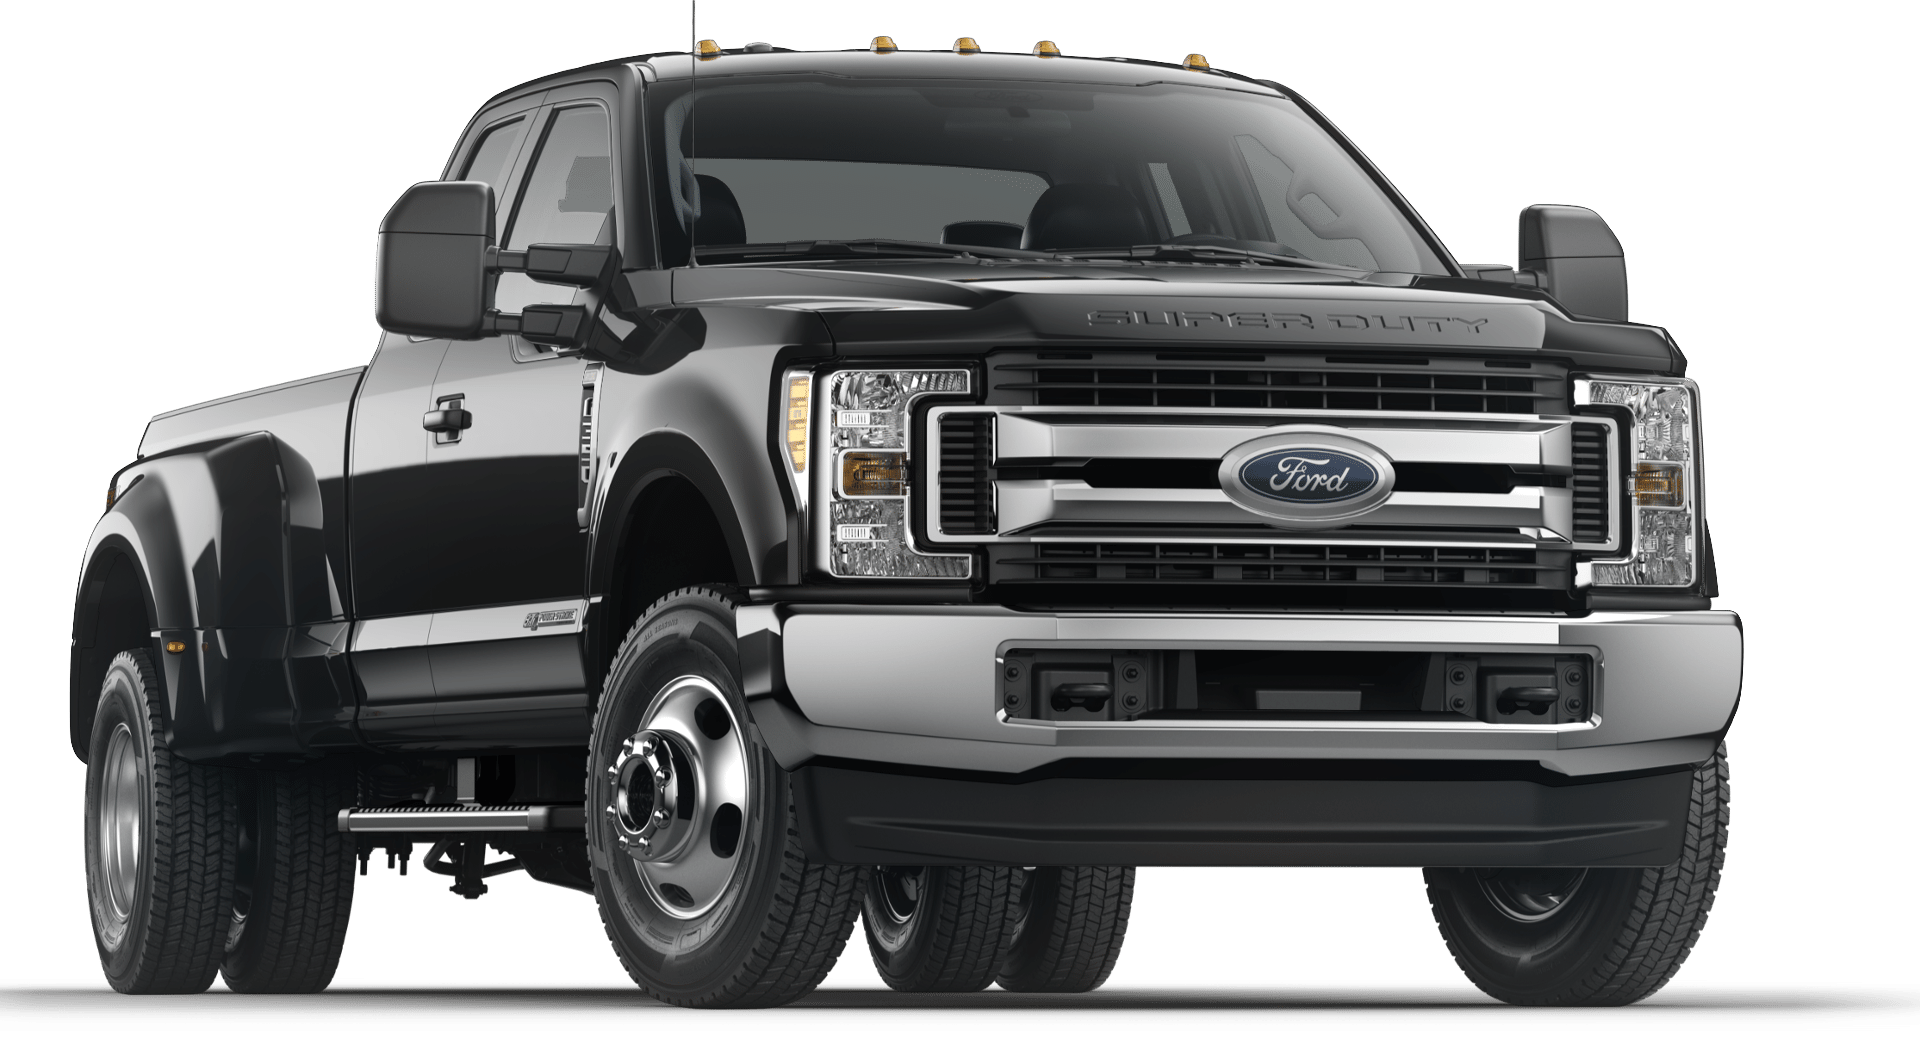 Ford F350 SuperDuty, 4WD Dually, with Turbo engine, spray